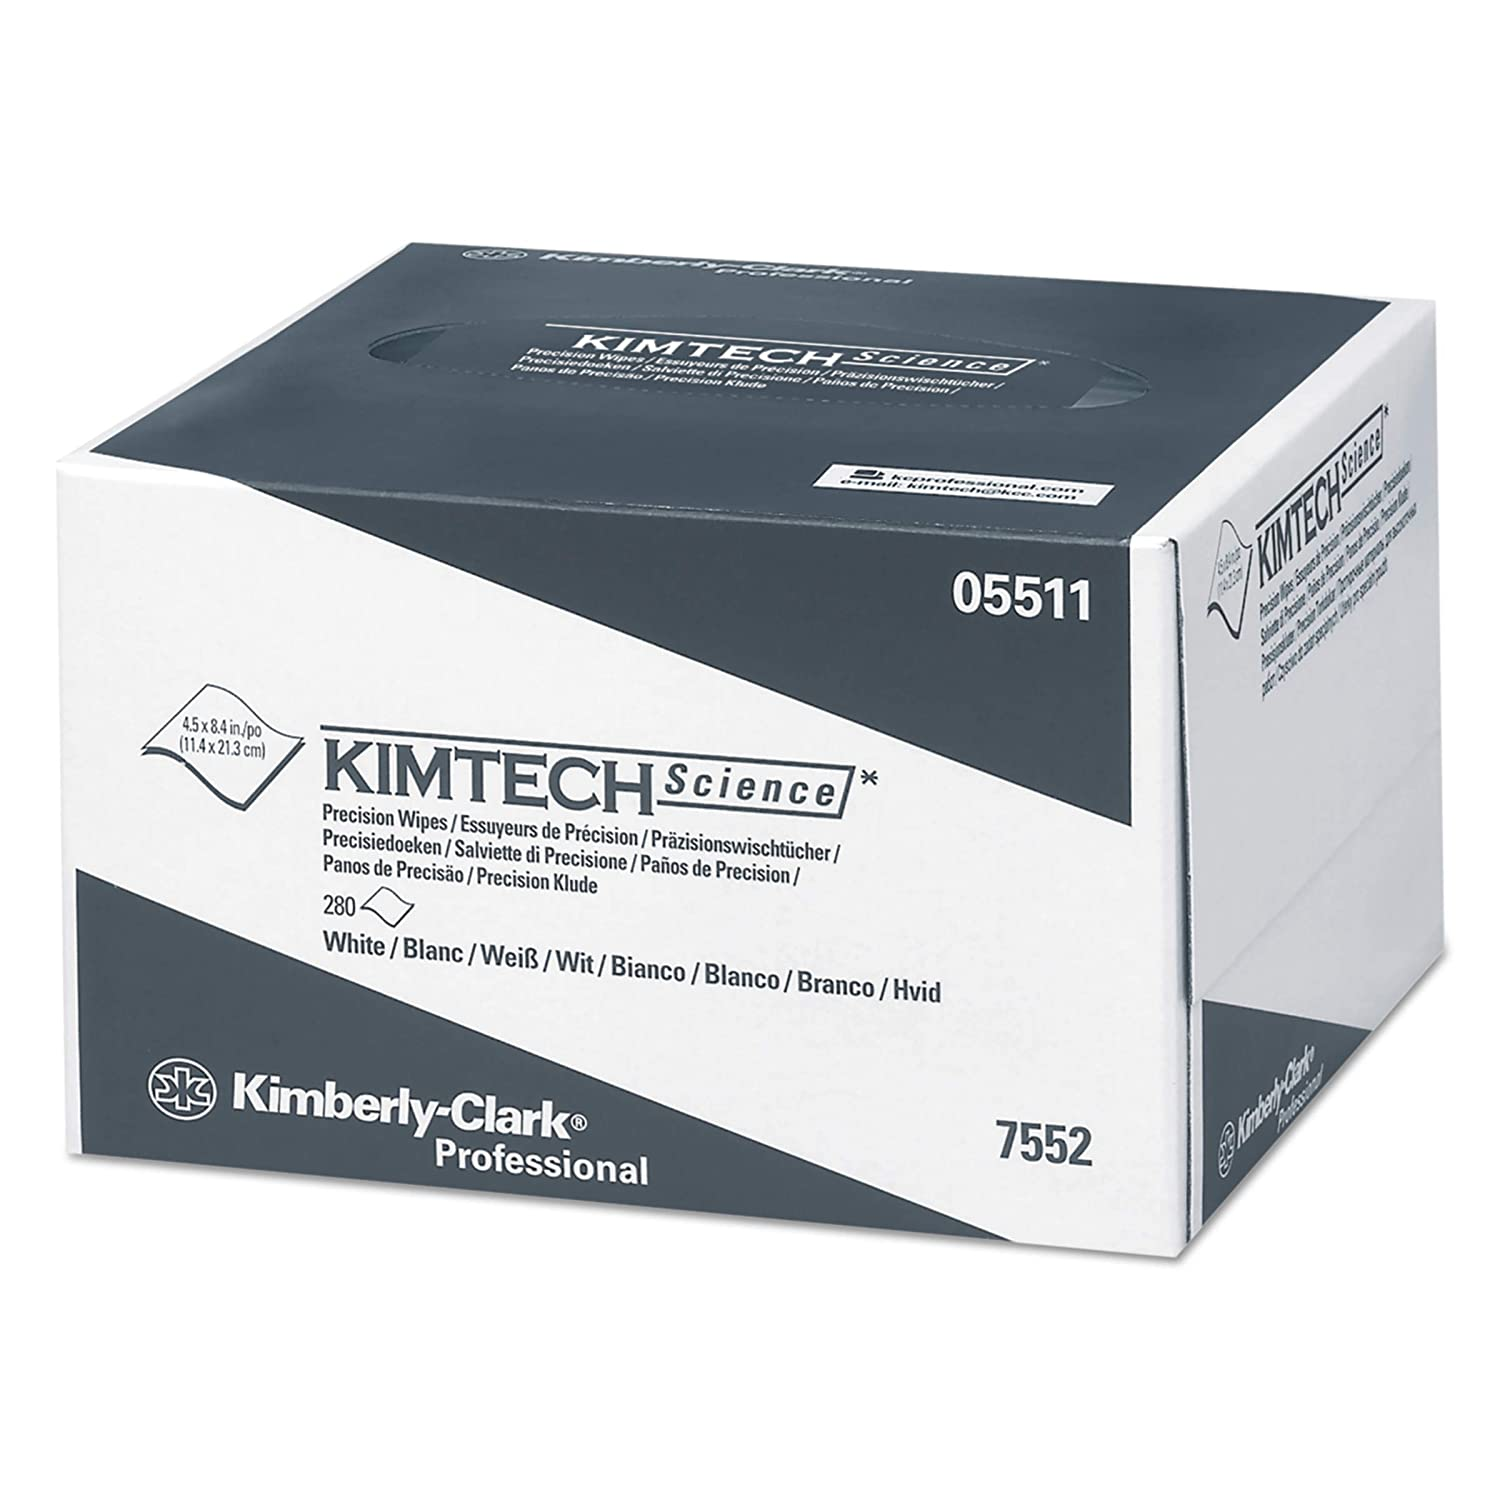 Kimtech 05511 Precision Wipers, POP-UP Box, 1-Ply, 4 2/5 x 8 2/5, White, 280 Wipers per Box (Case of 60) Kimberly Clark